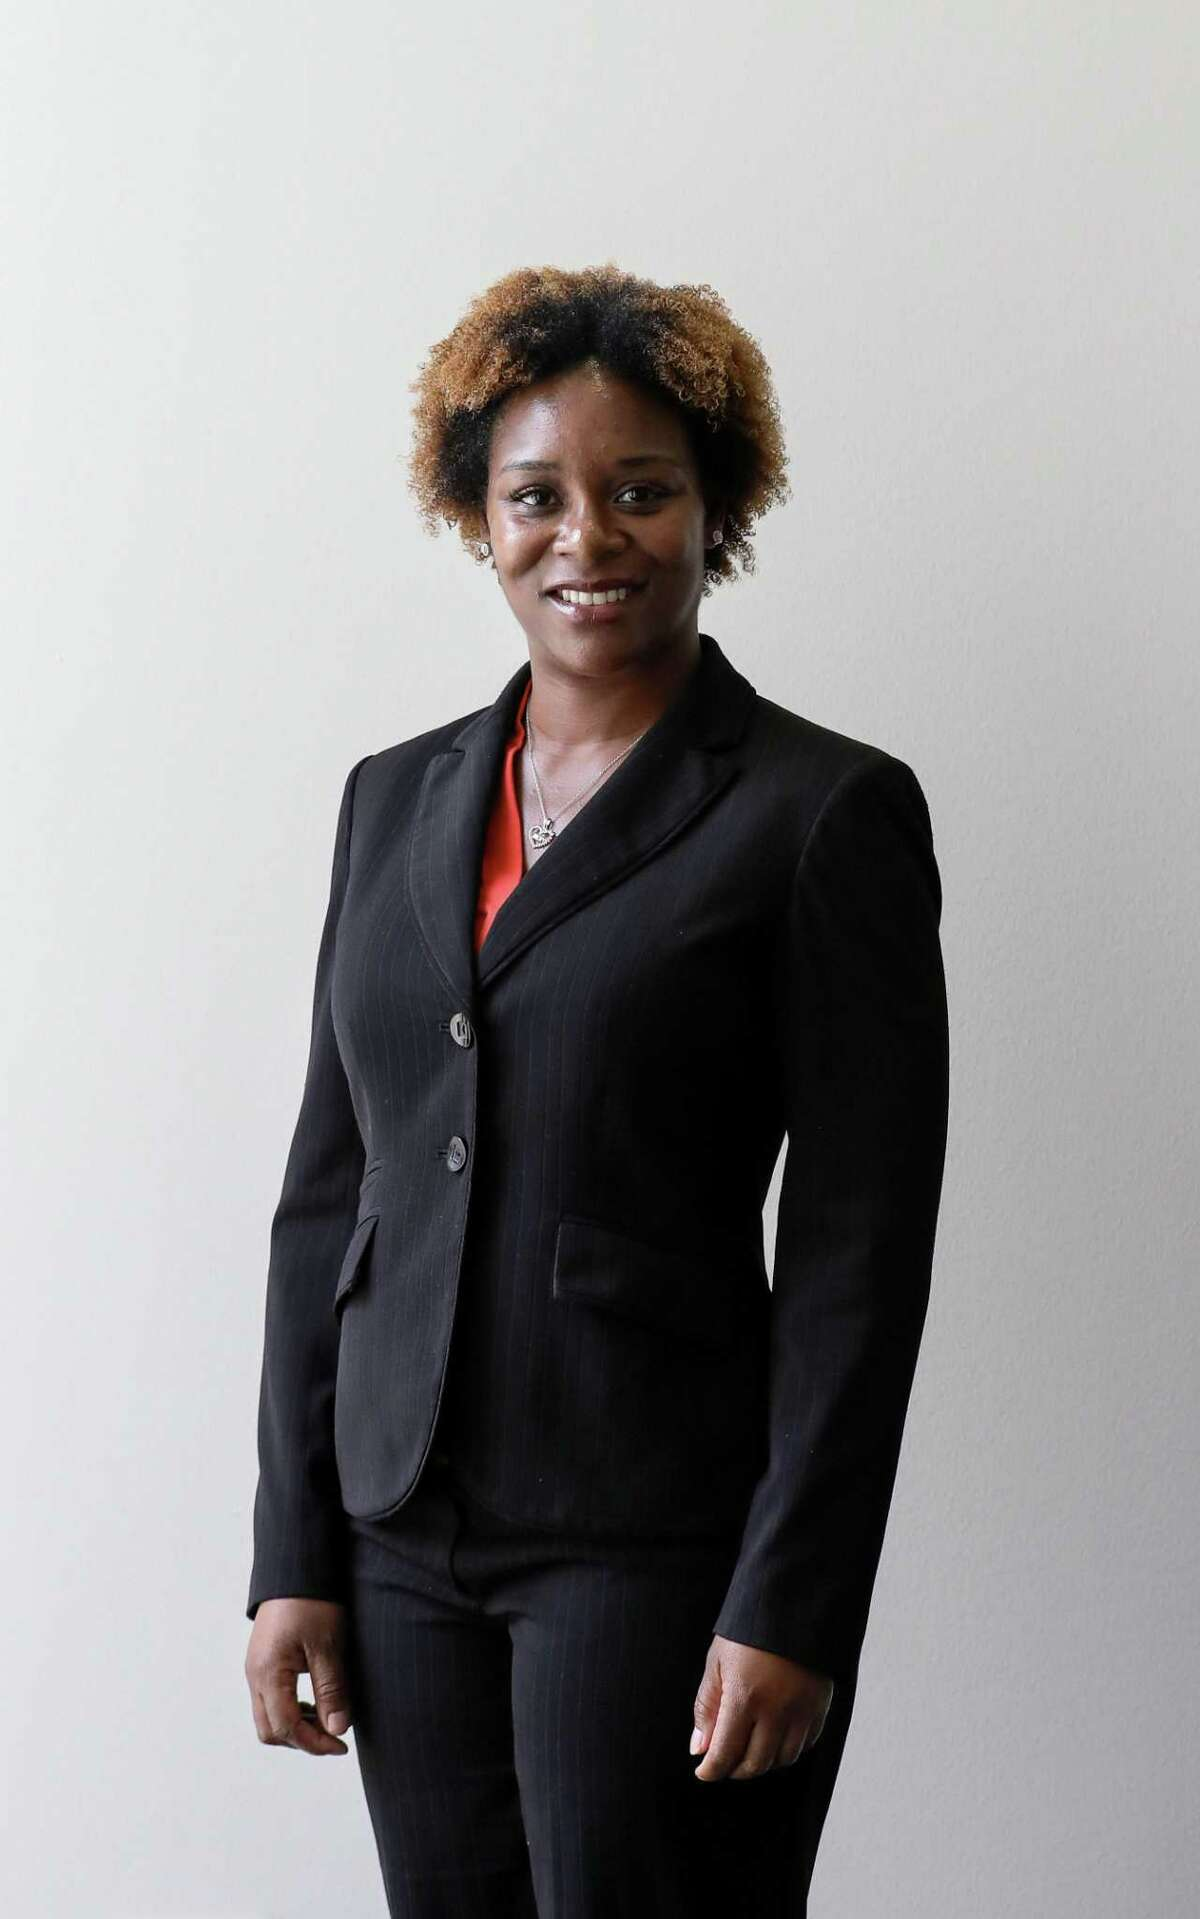 Michelle Moore, Democratic candidate for the 314th Juvenile District Court, poses for a portrait at the Houston Chronicle Wednesday, Oct. 3, 2018, in Houston.